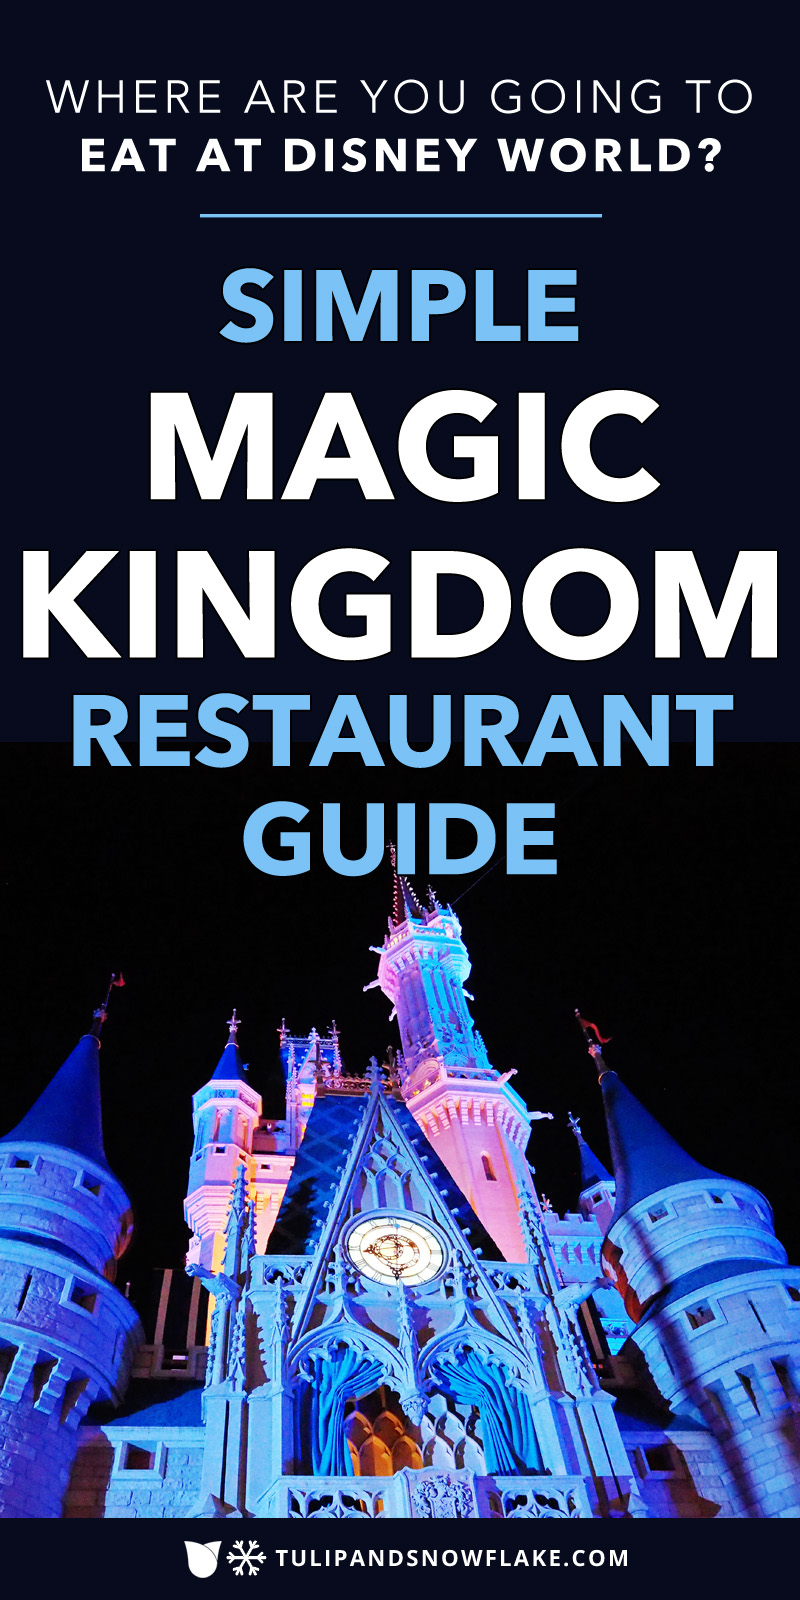 Magic Kingdom Restaurant Guide